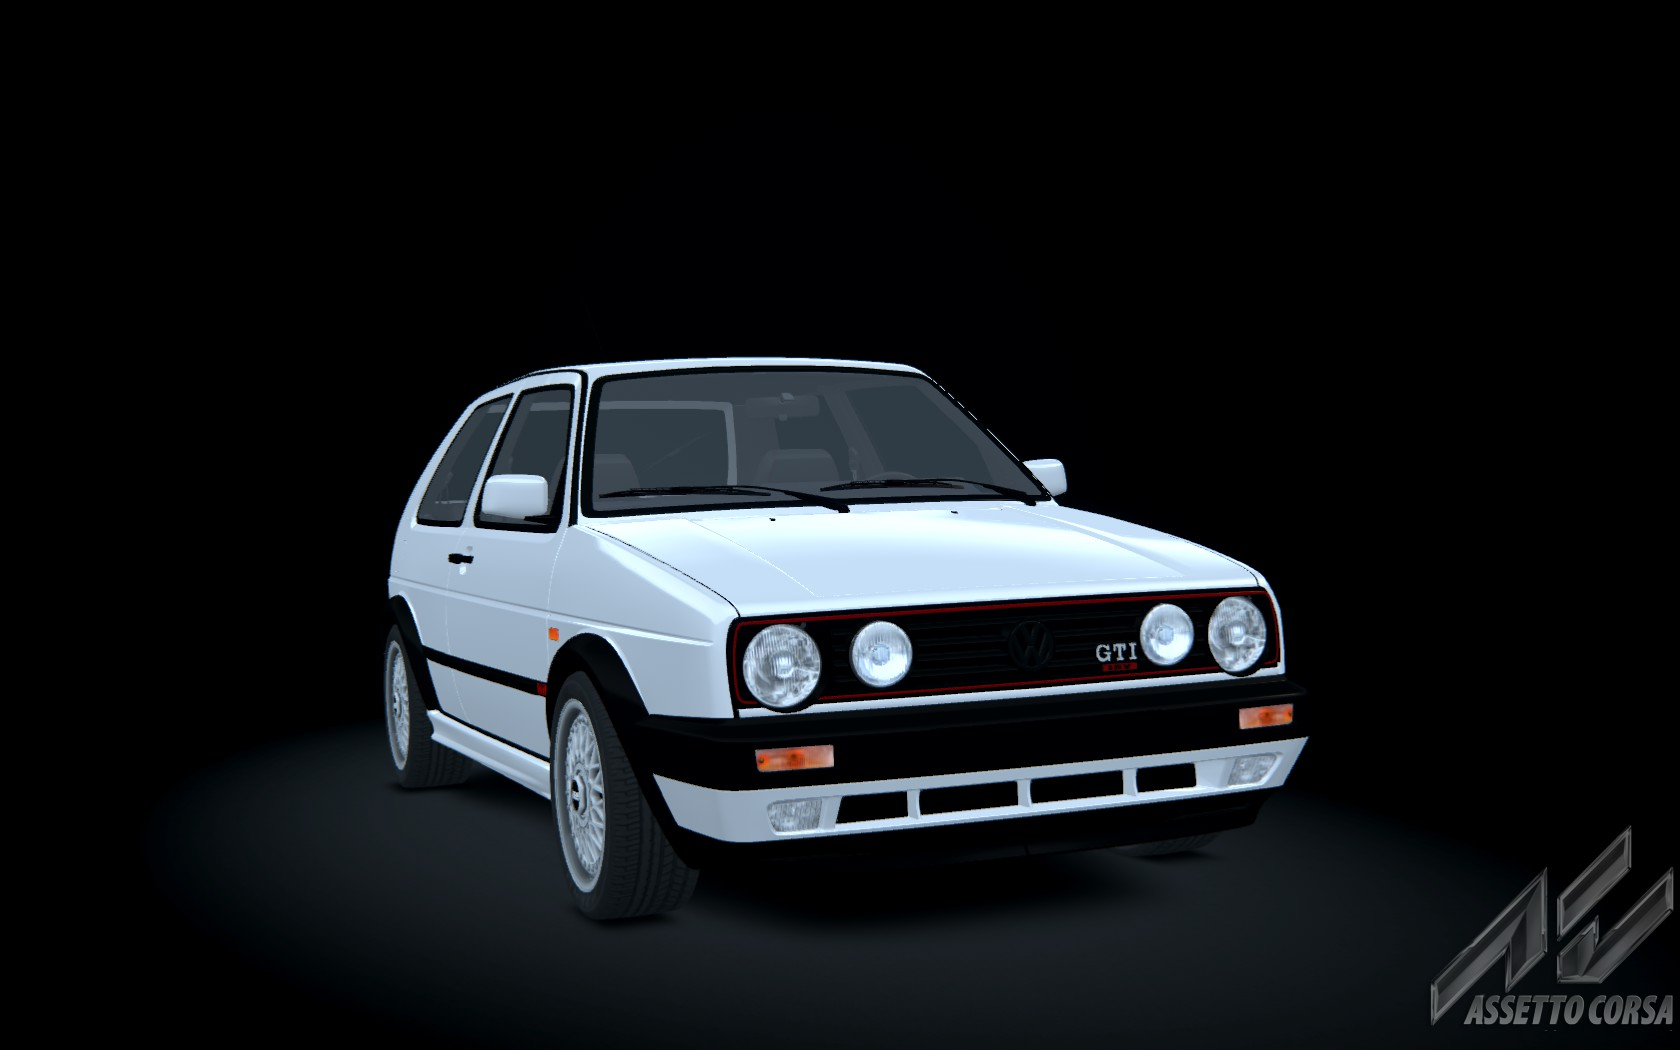 volkswagen golf ii gti 16v volkswagen car detail. Black Bedroom Furniture Sets. Home Design Ideas